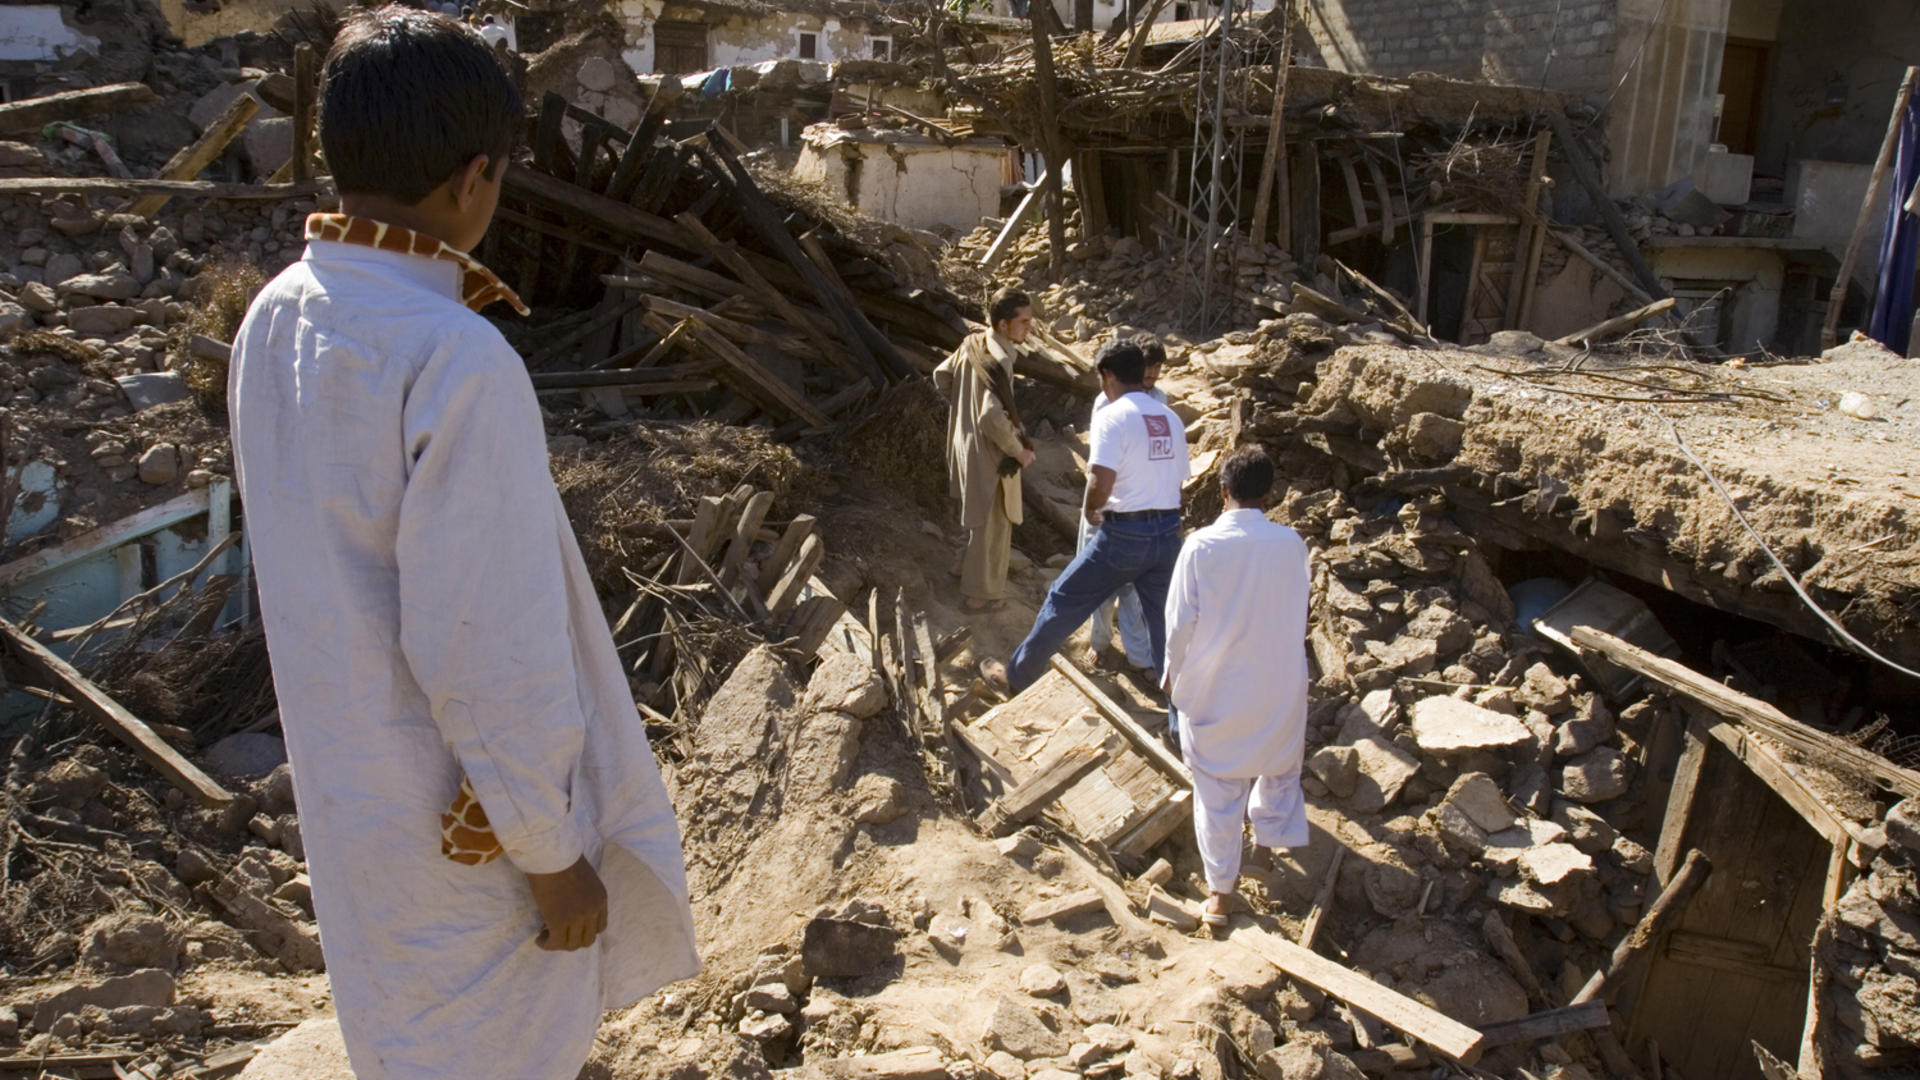 The IRC team had to hike over flattened houses and between precariously leaning walls to reach the village center.